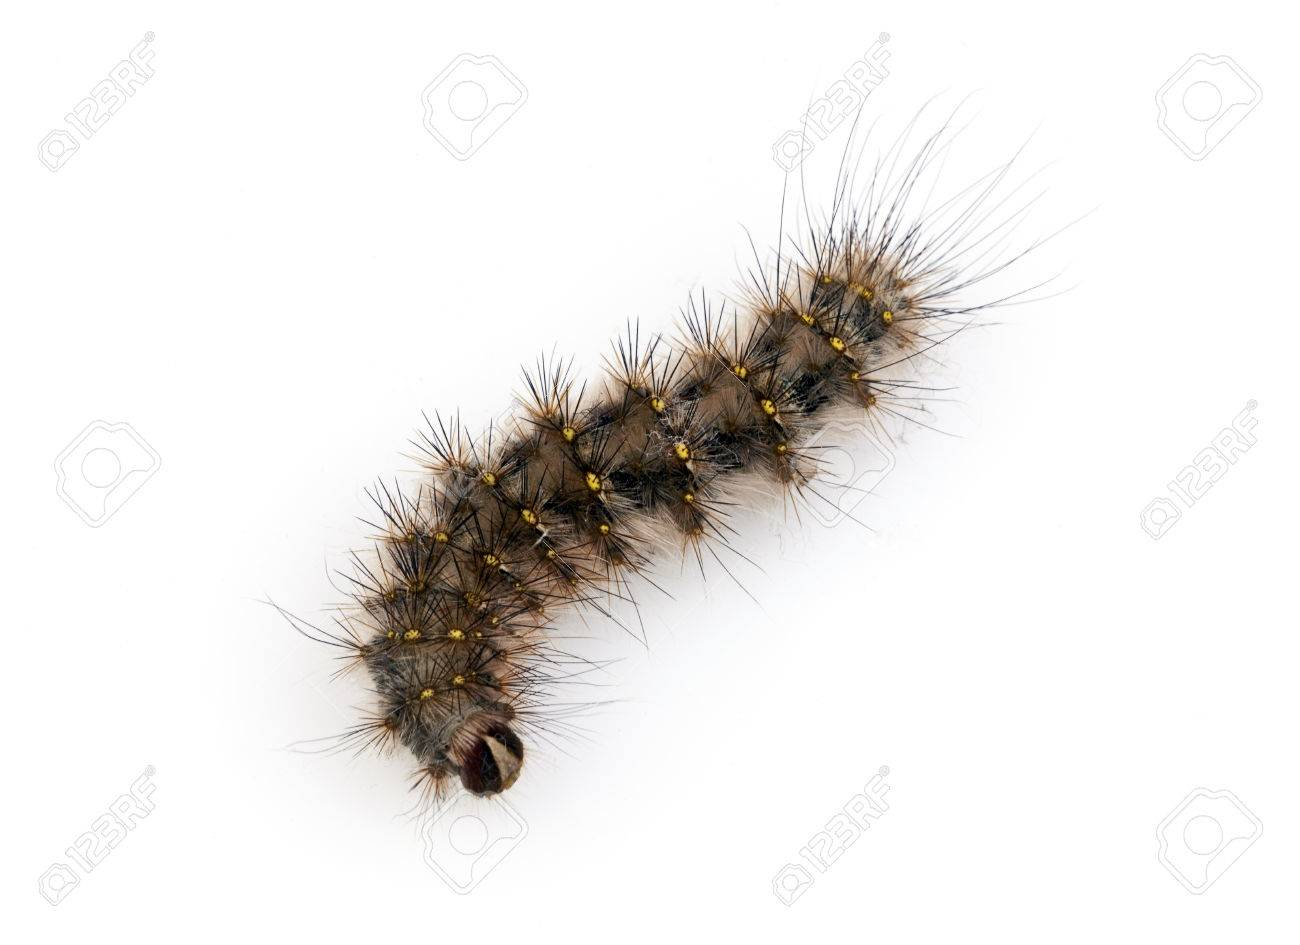 Black caterpillar hairy